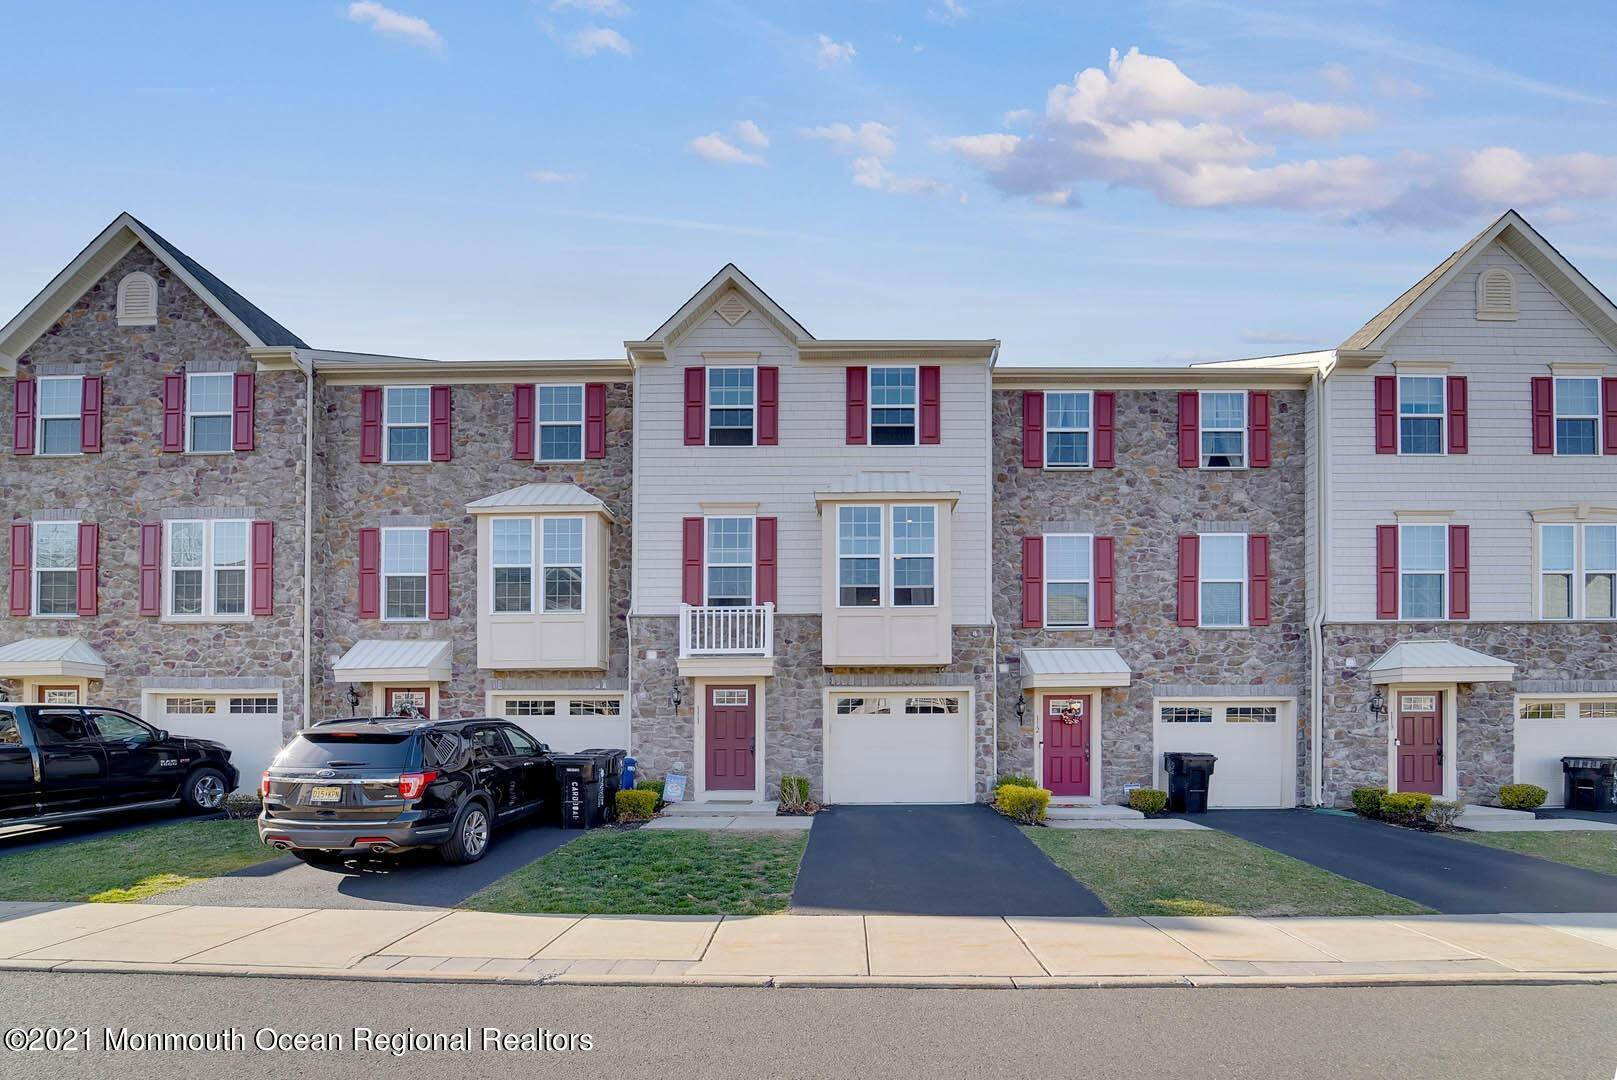 2. Condominiums for Sale at 111 Phillip E. Frank Way Cliffwood, New Jersey 07721 United States